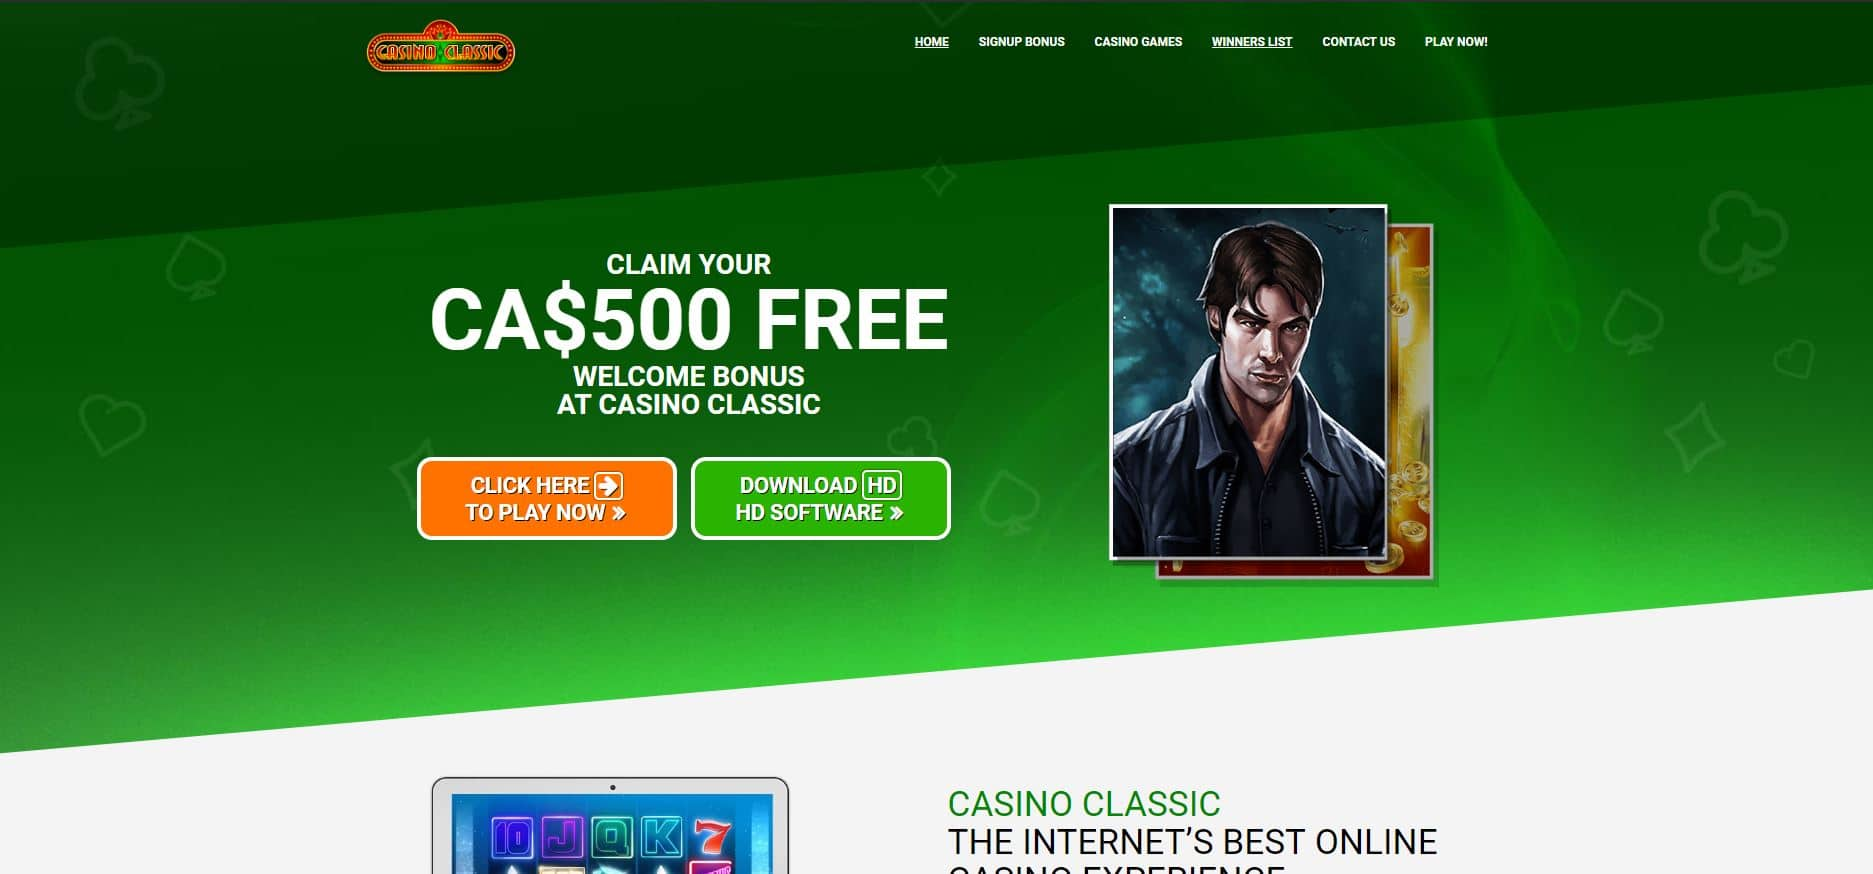 Casino classic review : a good opportunity to earn money ?